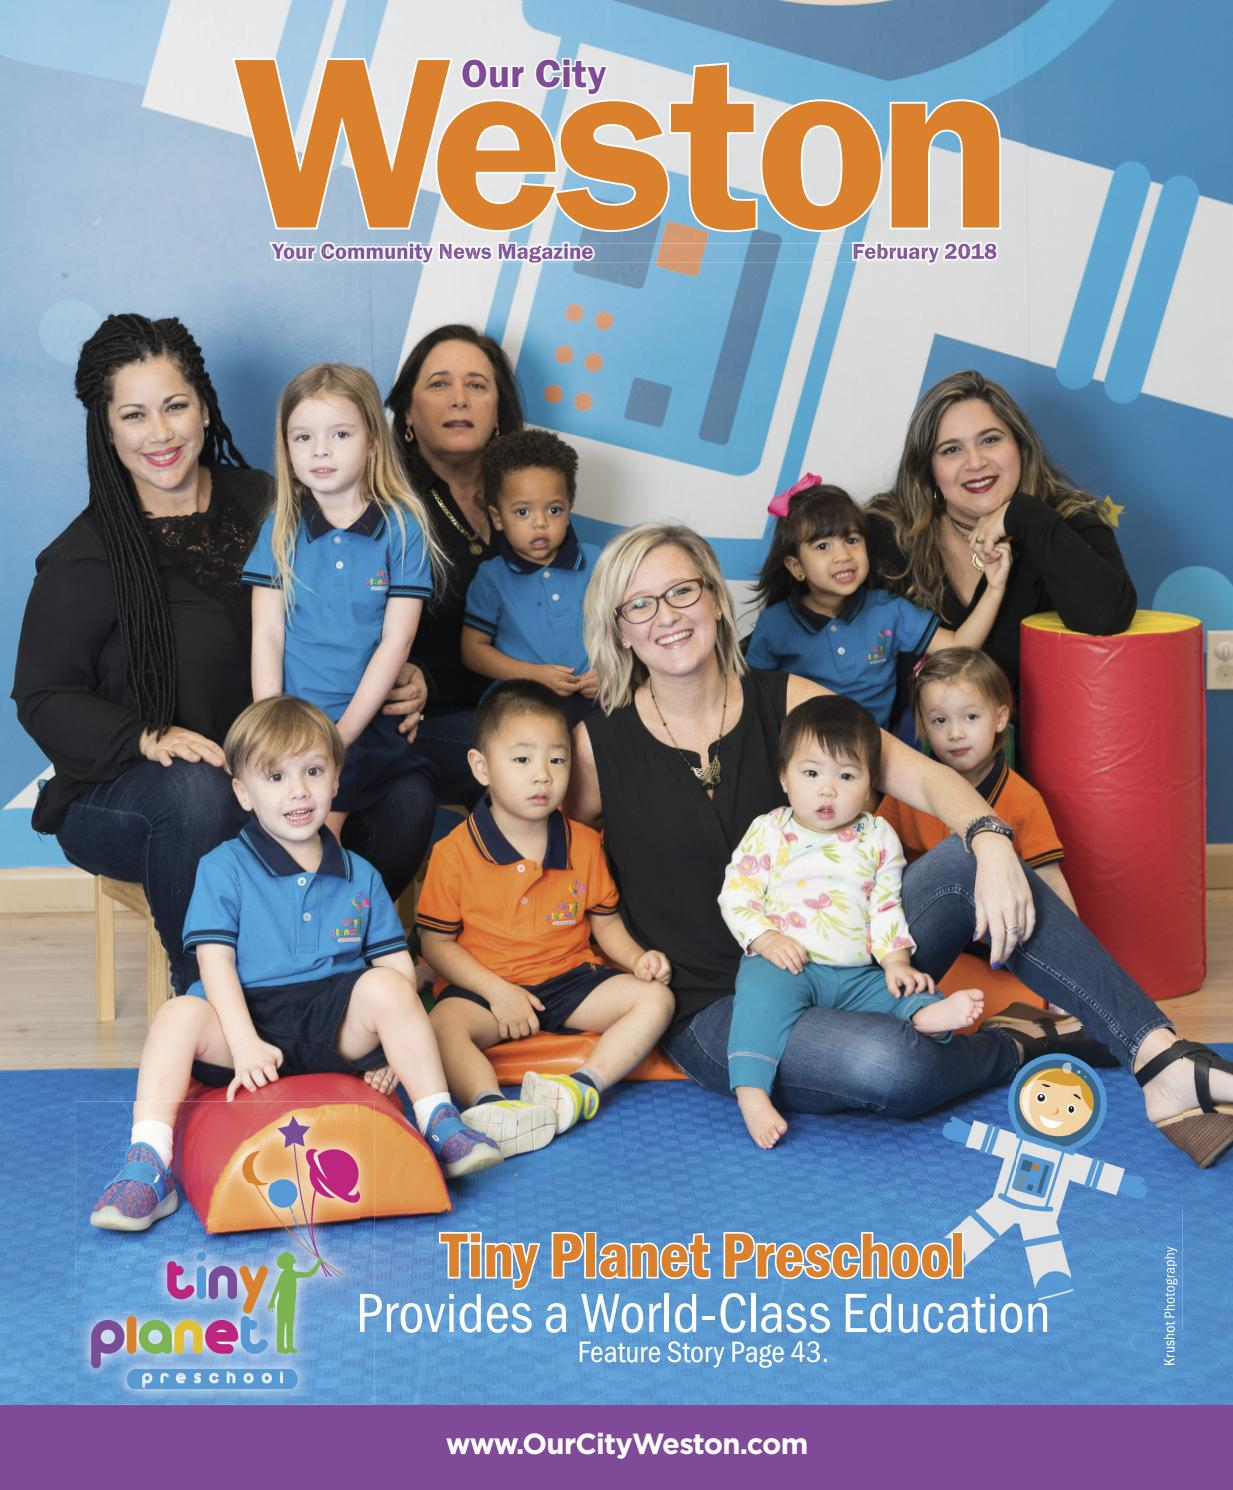 Our City Weston February 2018 By Media Issuu Ct Wiring Diagram